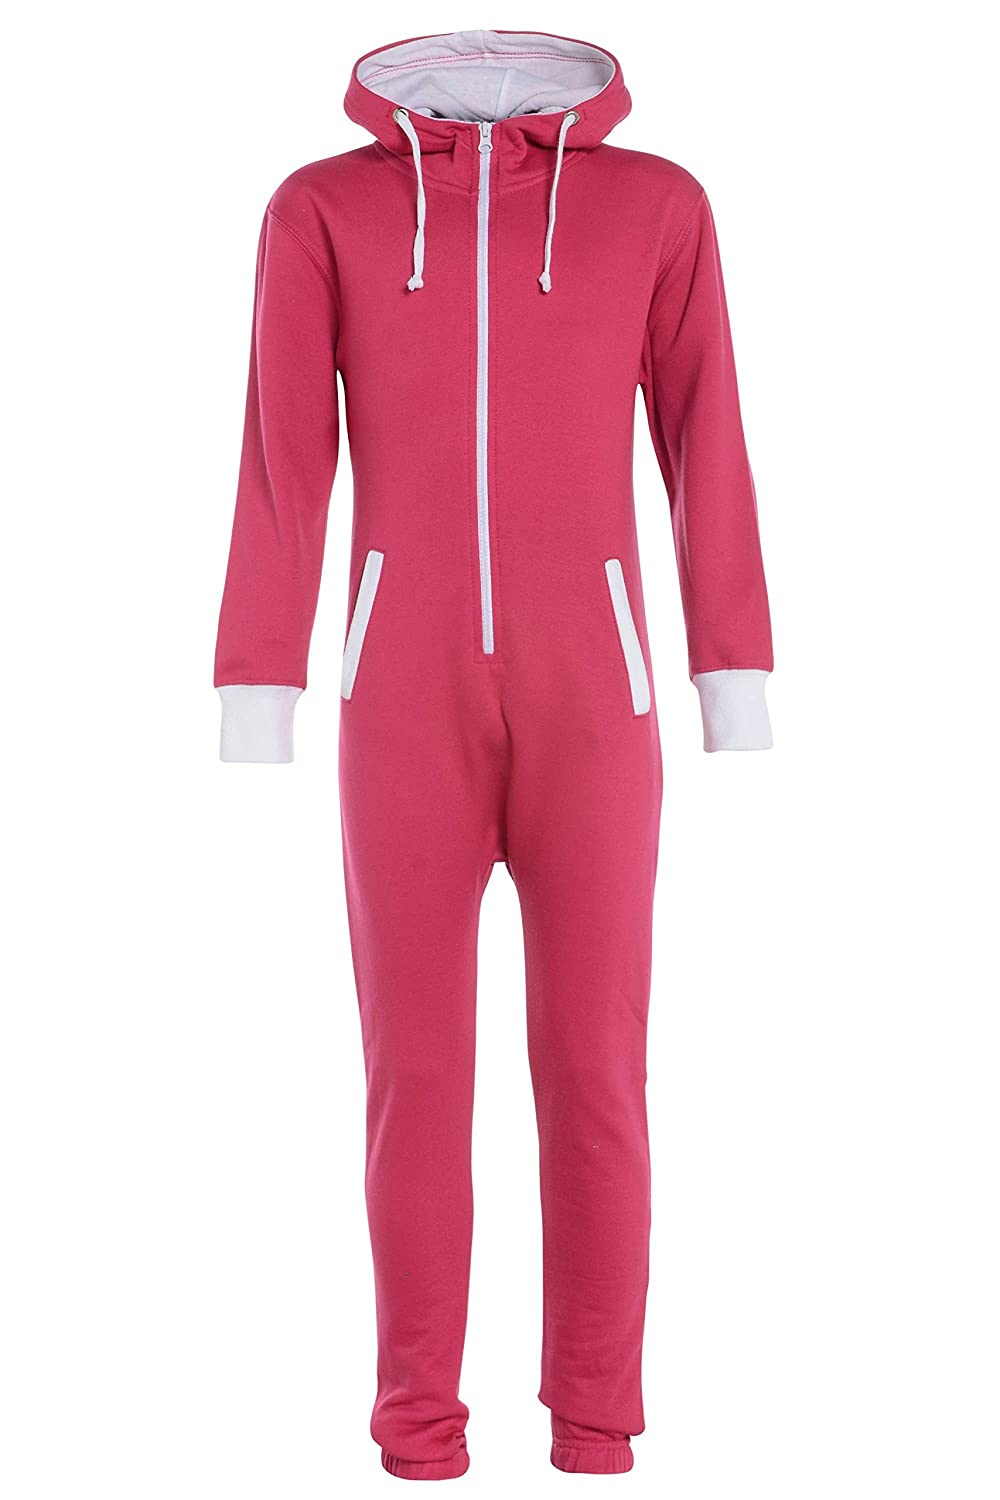 All in One Jumpsuit for Boys and Girls G5 Apparel Urban Street Kids Unisex Plain Onesie C43